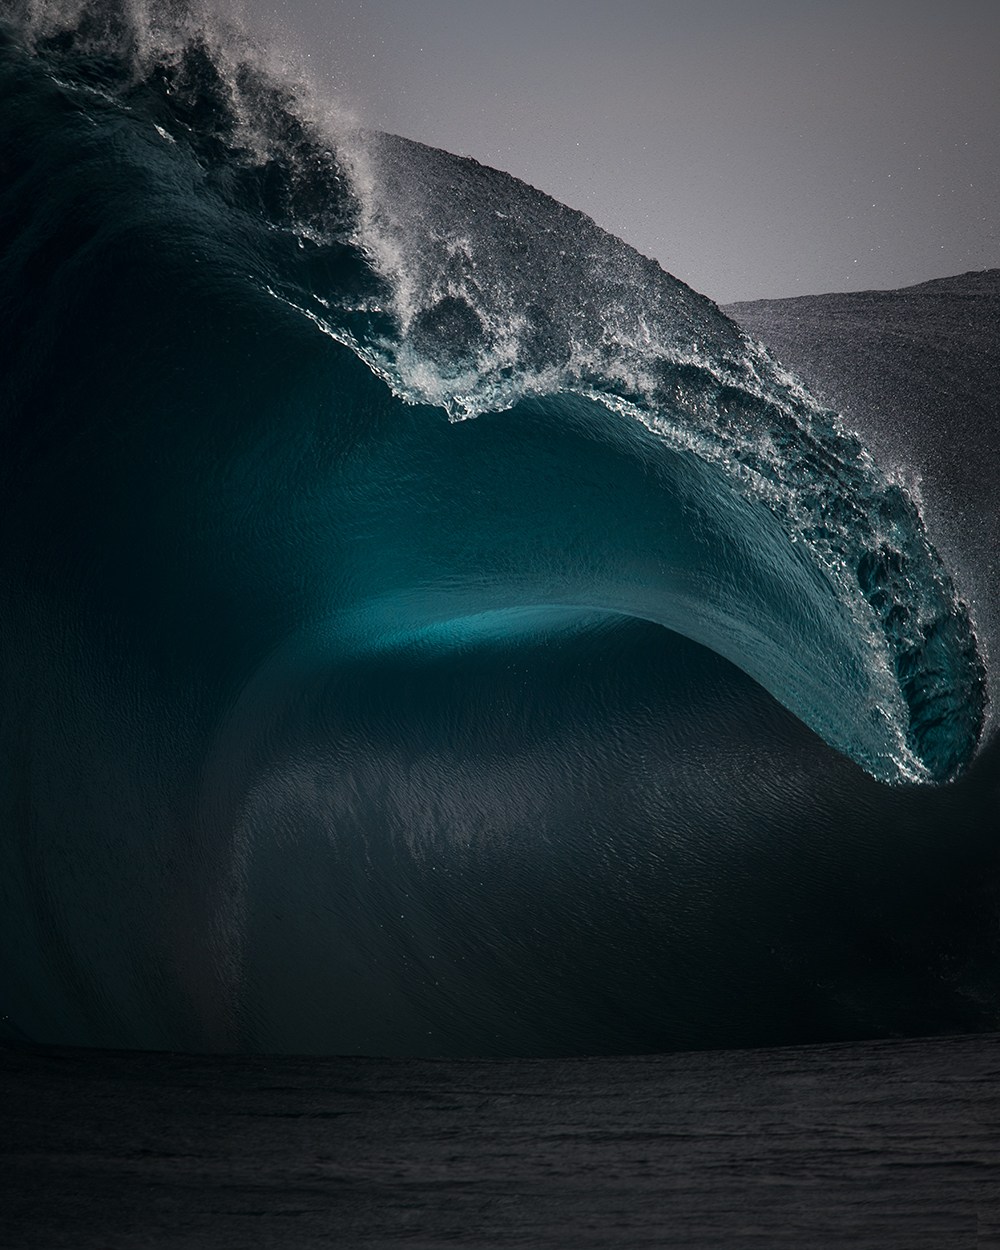 colorblind-photographer-capture-majestic-waves